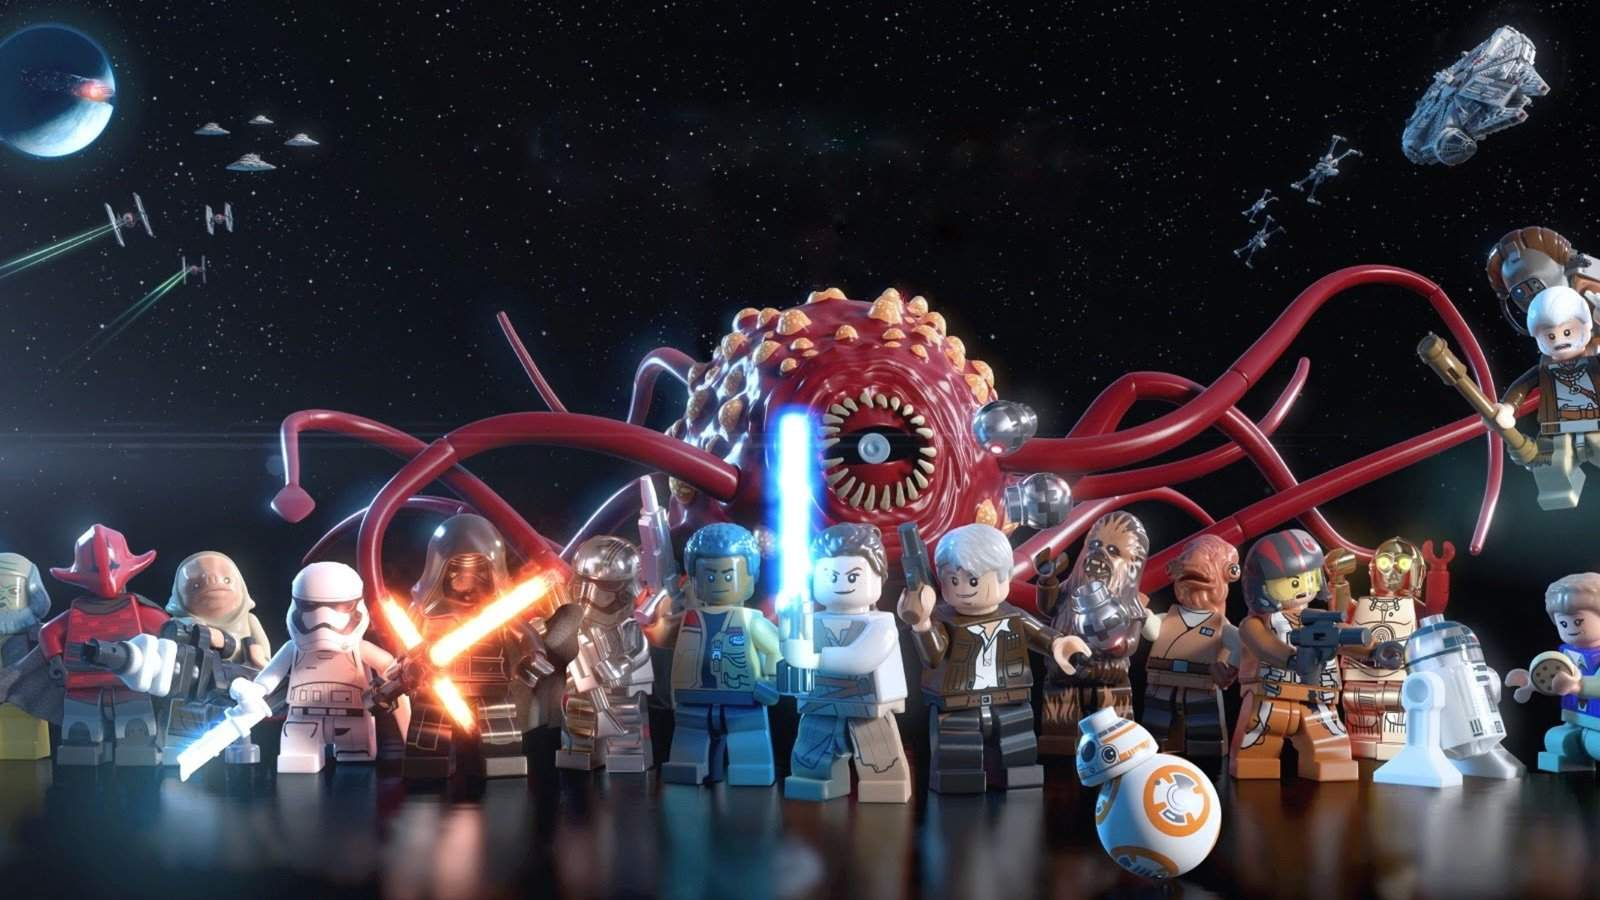 Character Vignettes For Lego Star Wars The Force Awakens Are